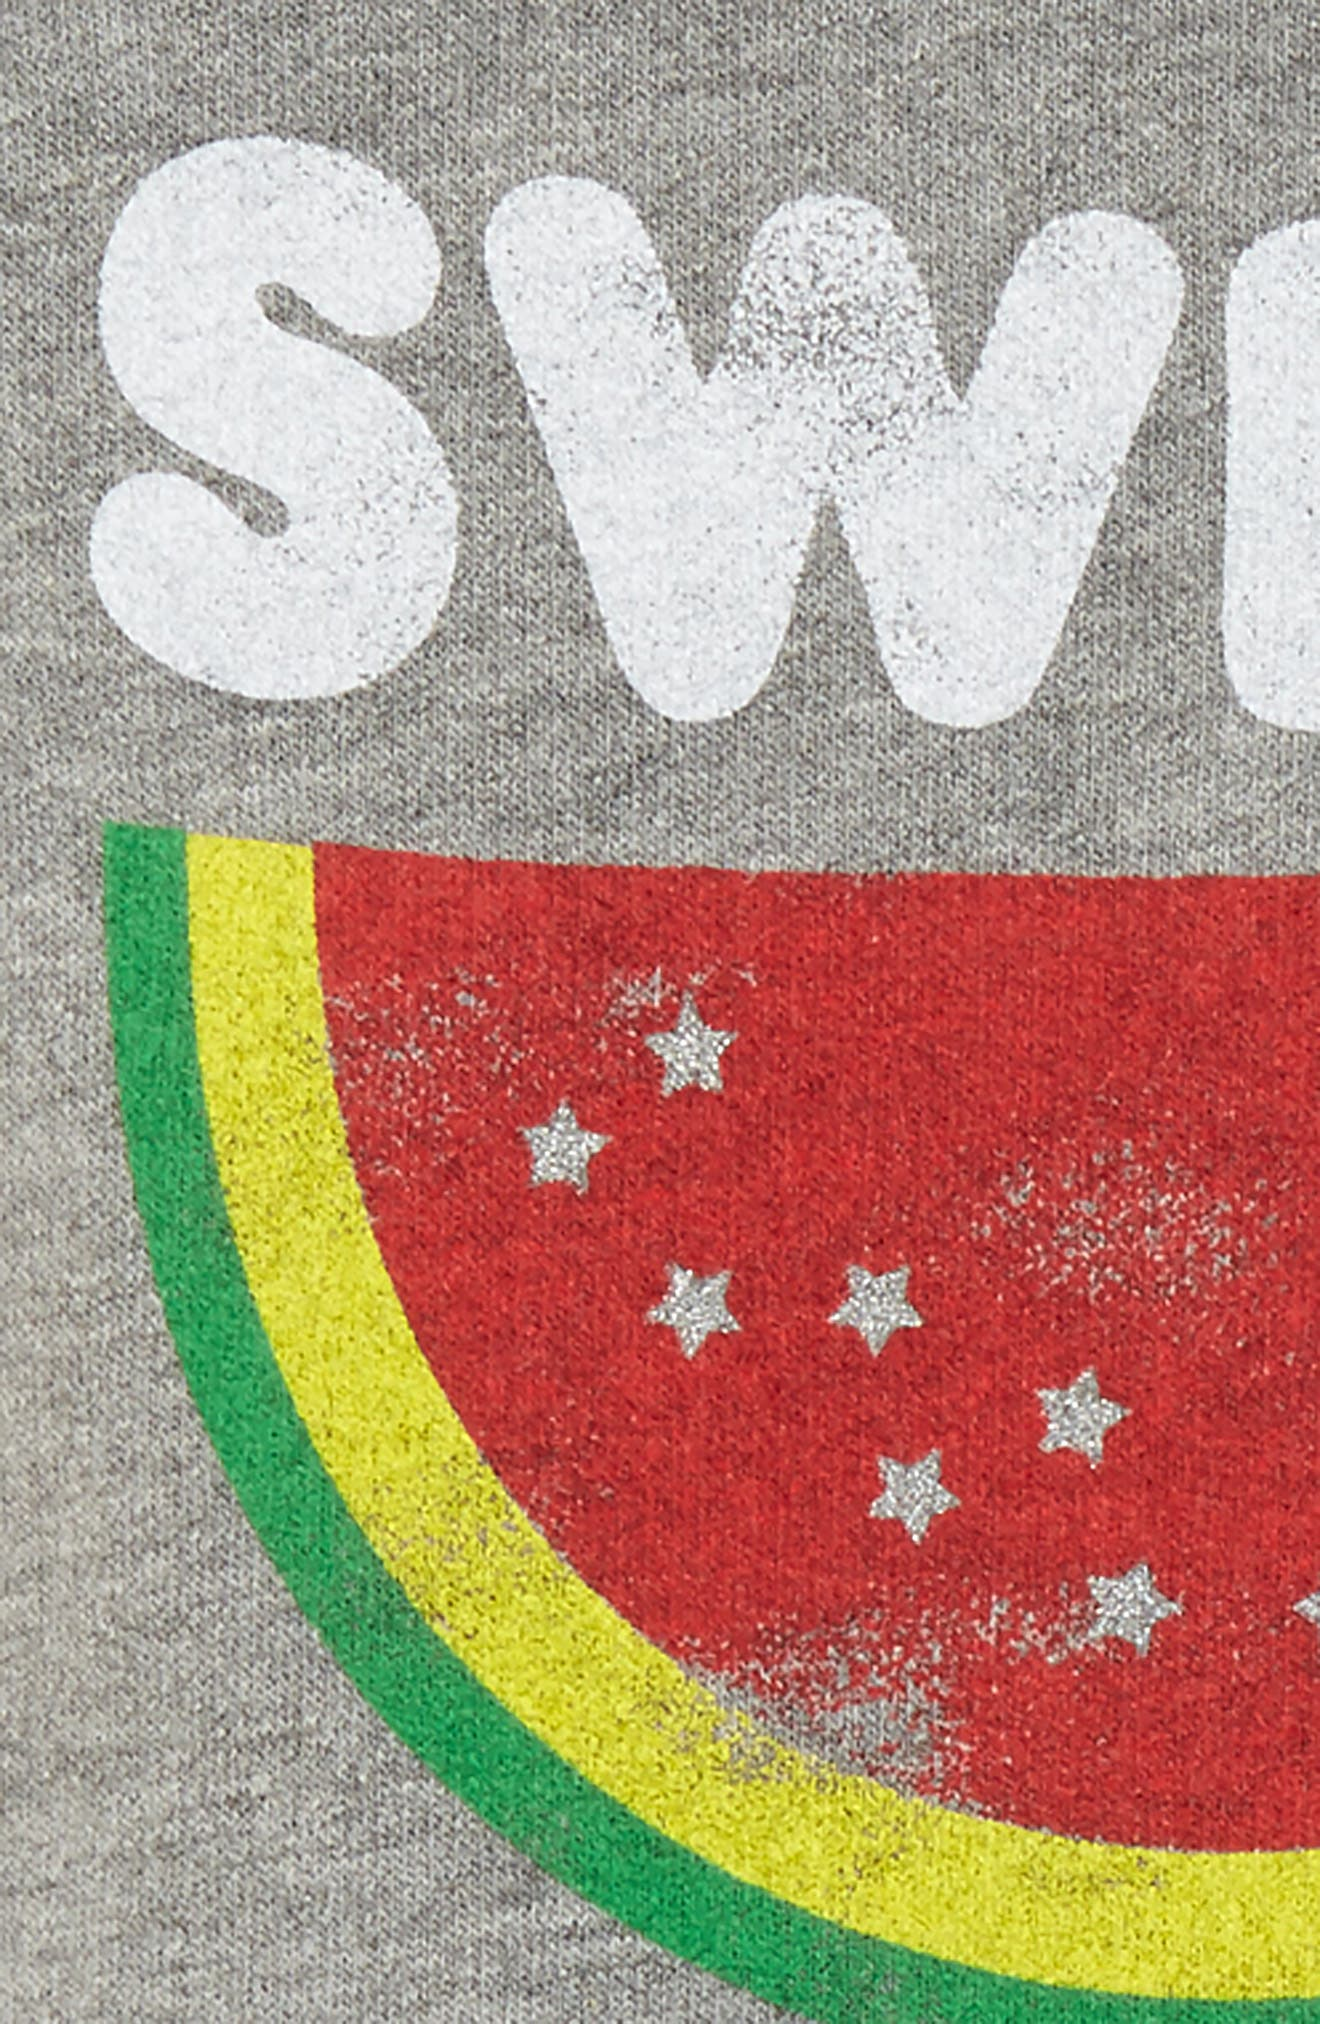 Sweet Freedom Sweatshirt,                             Alternate thumbnail 2, color,                             031